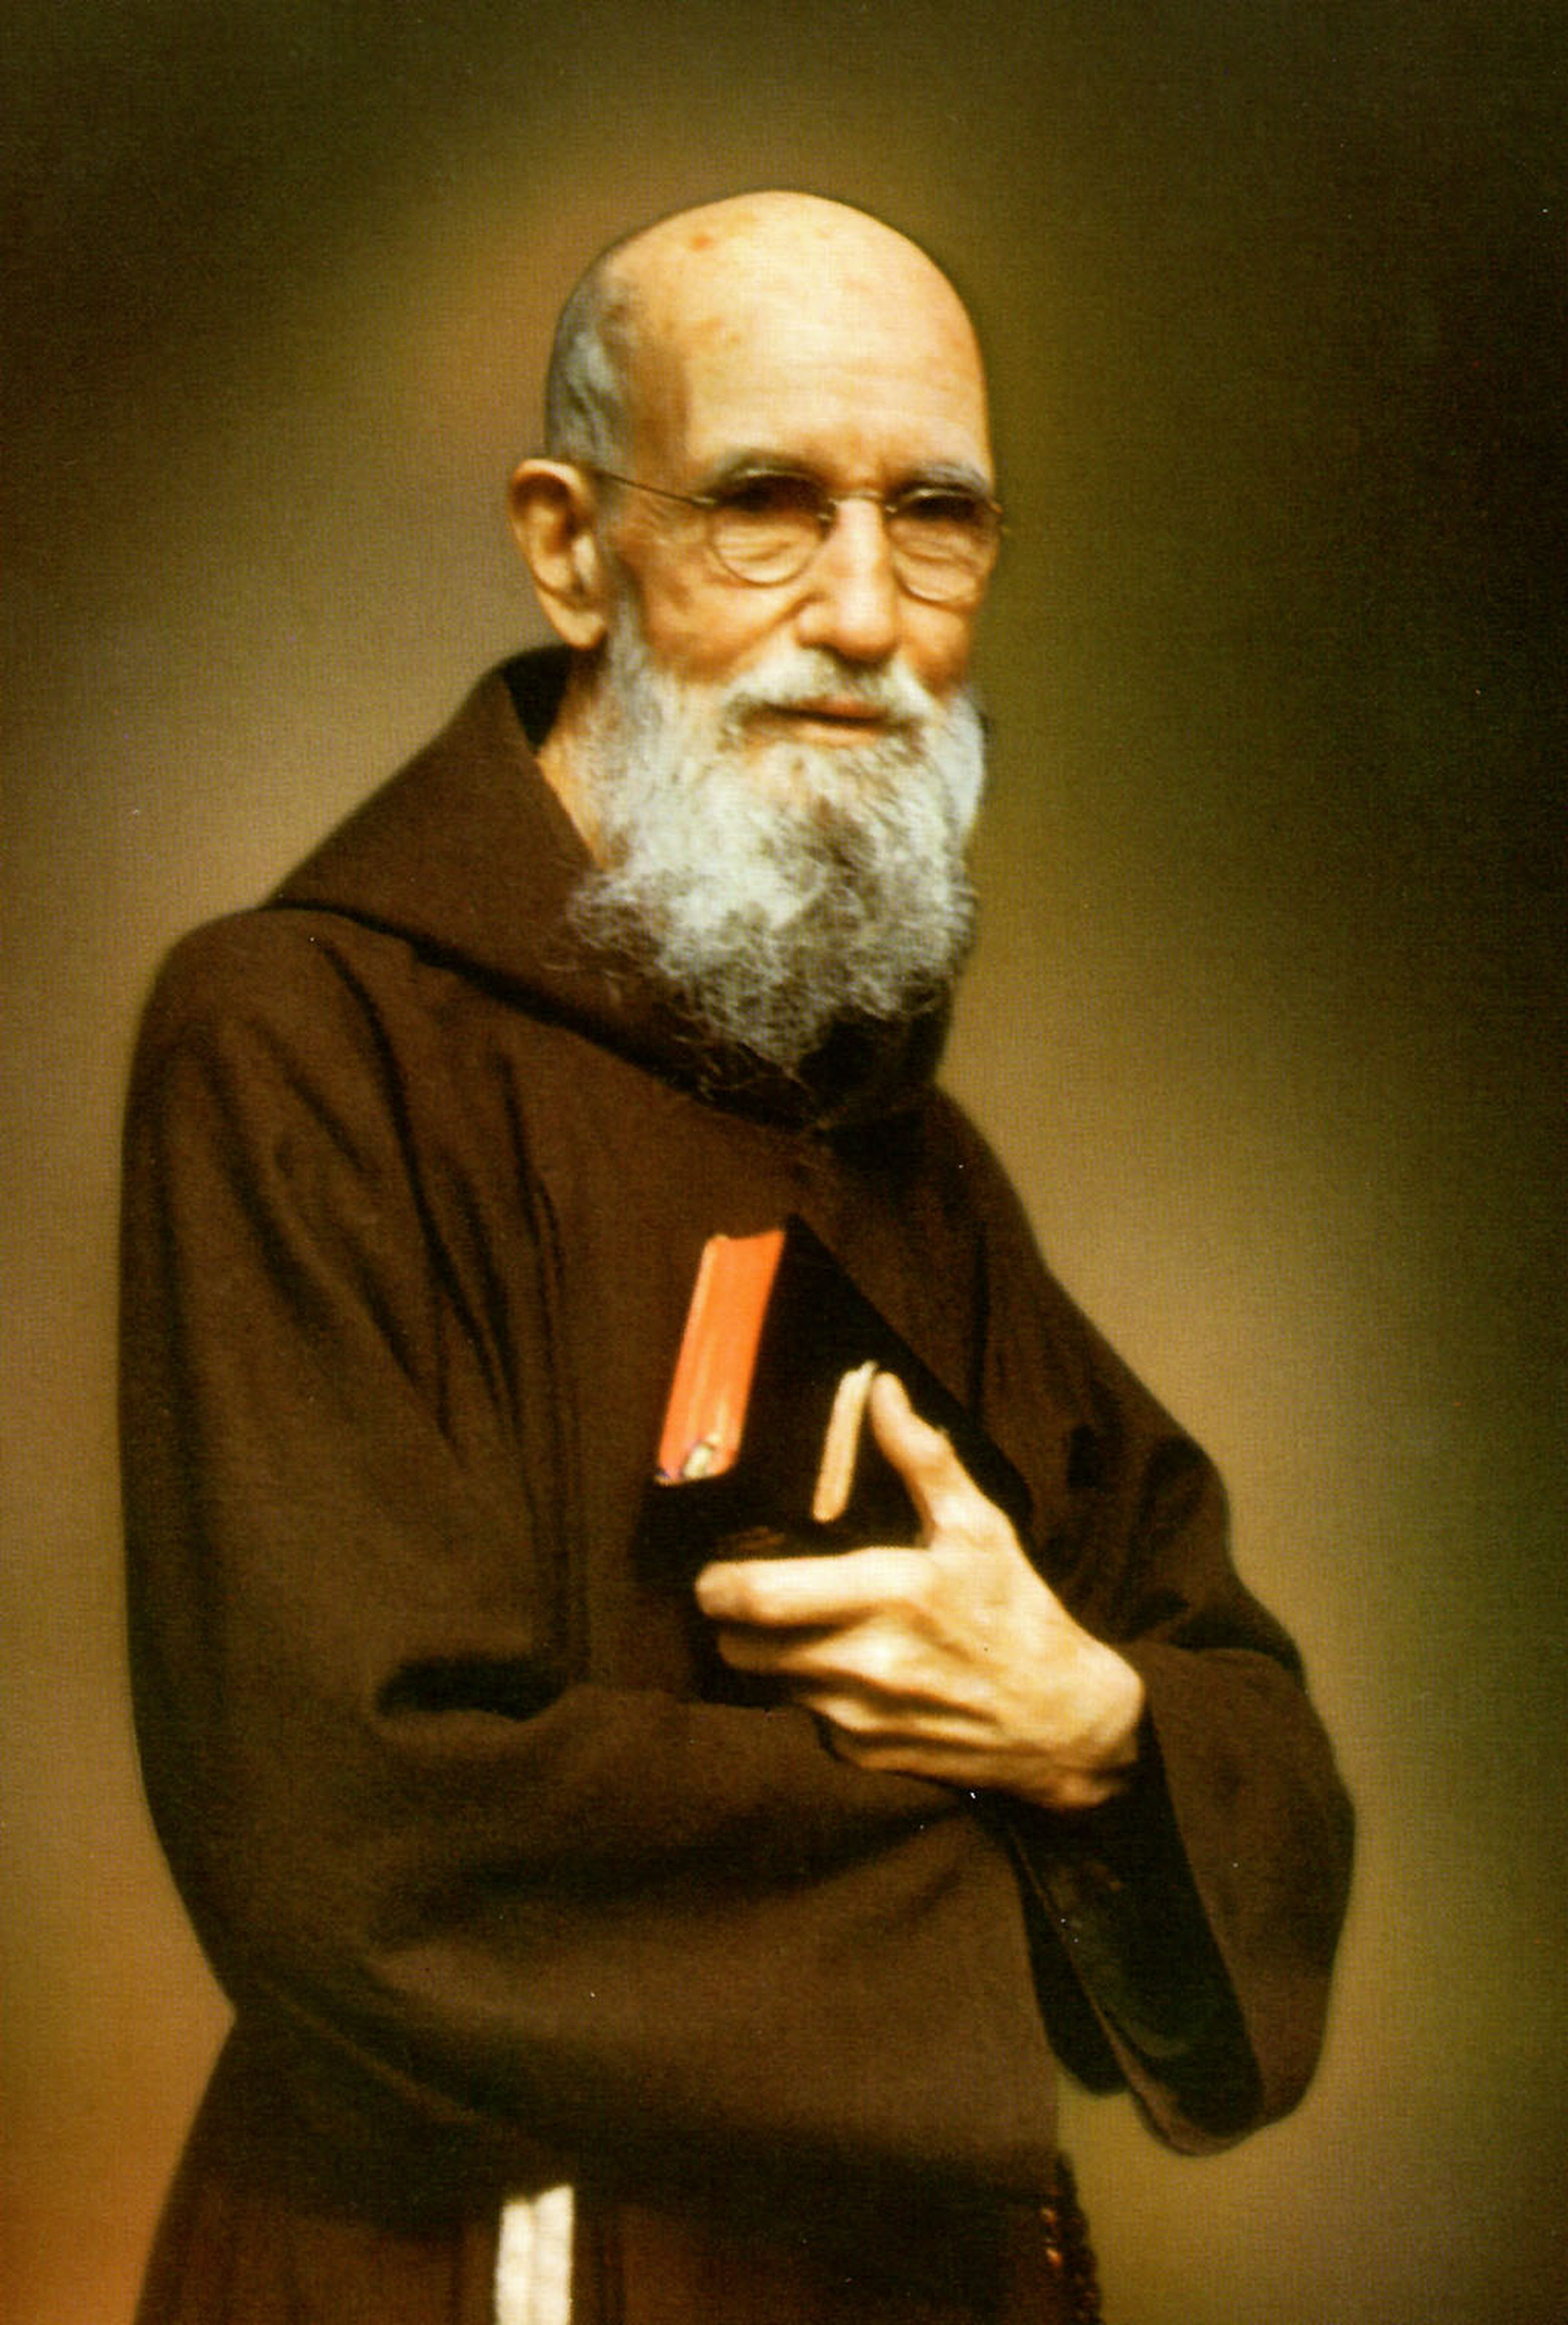 Liturgy of the Hours Prayers for Blessed Solanus Casey